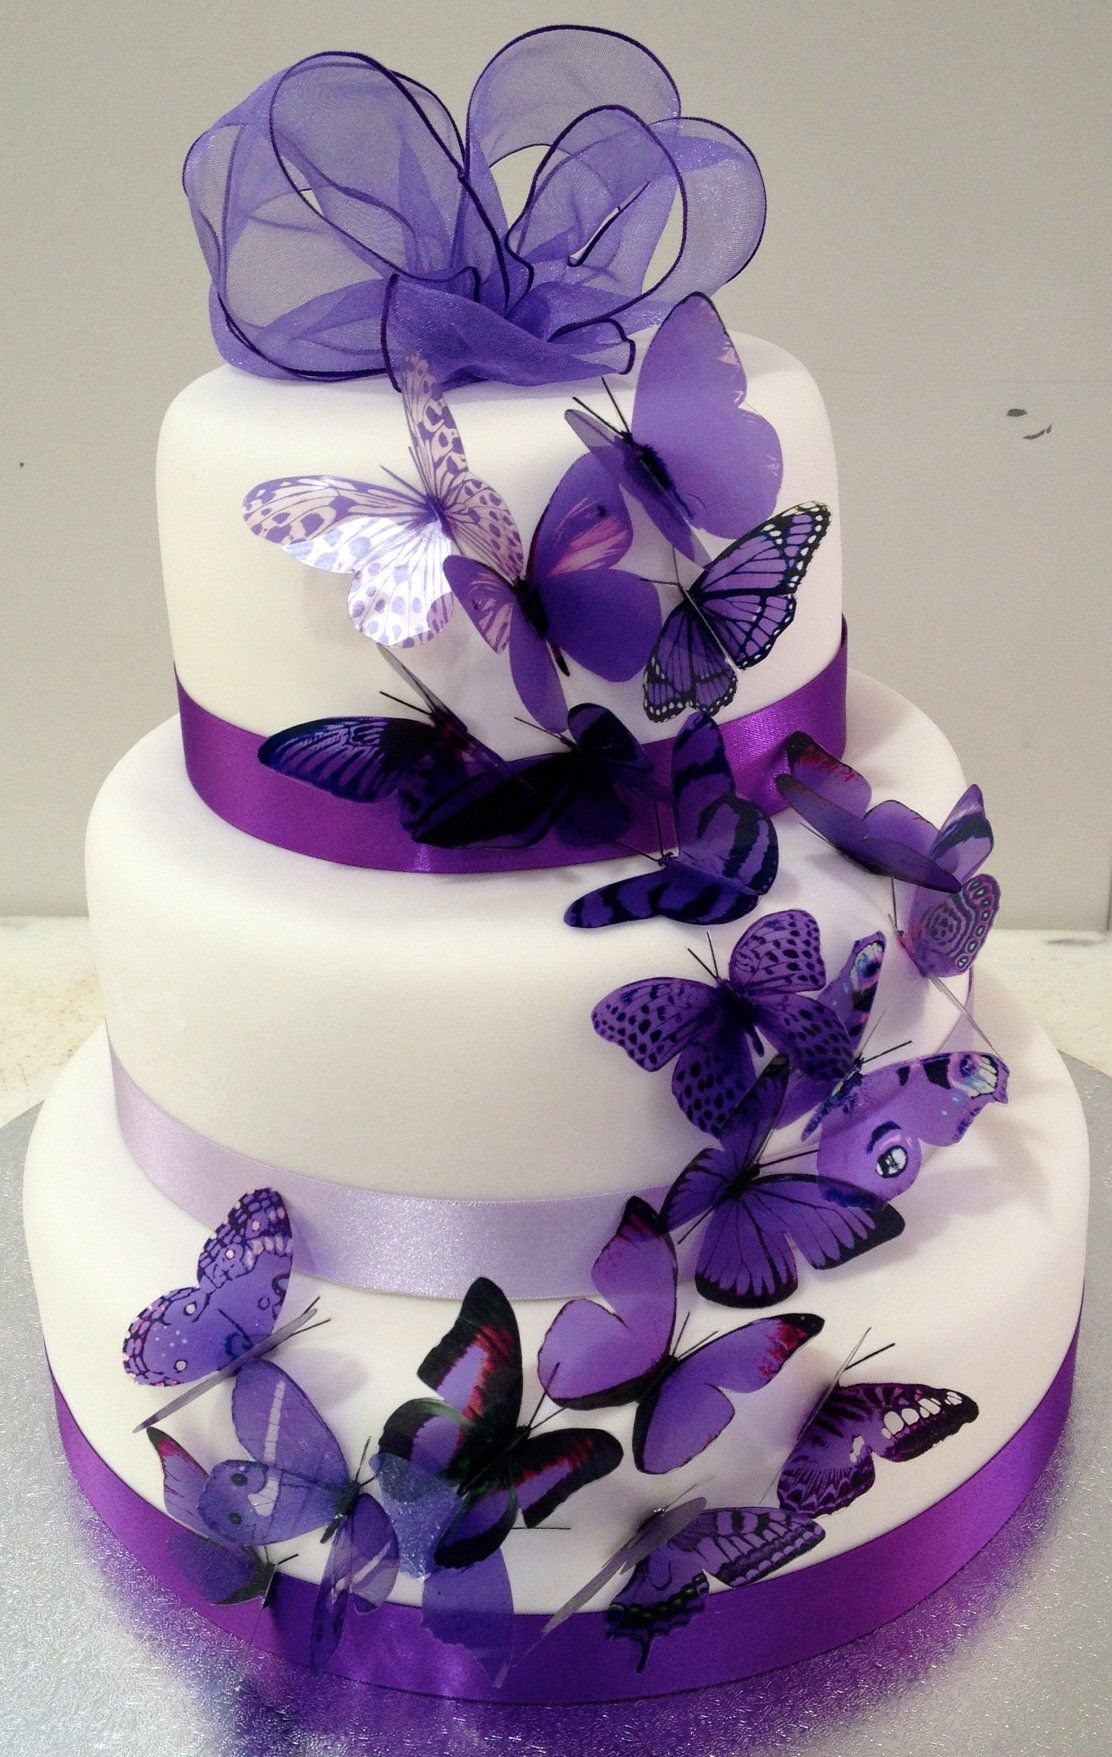 The blue cake company wedding cakes birthday cakes 2016 car release - Purple Wedding Cakes Purple Wedding Cakes With Butterflies Picture